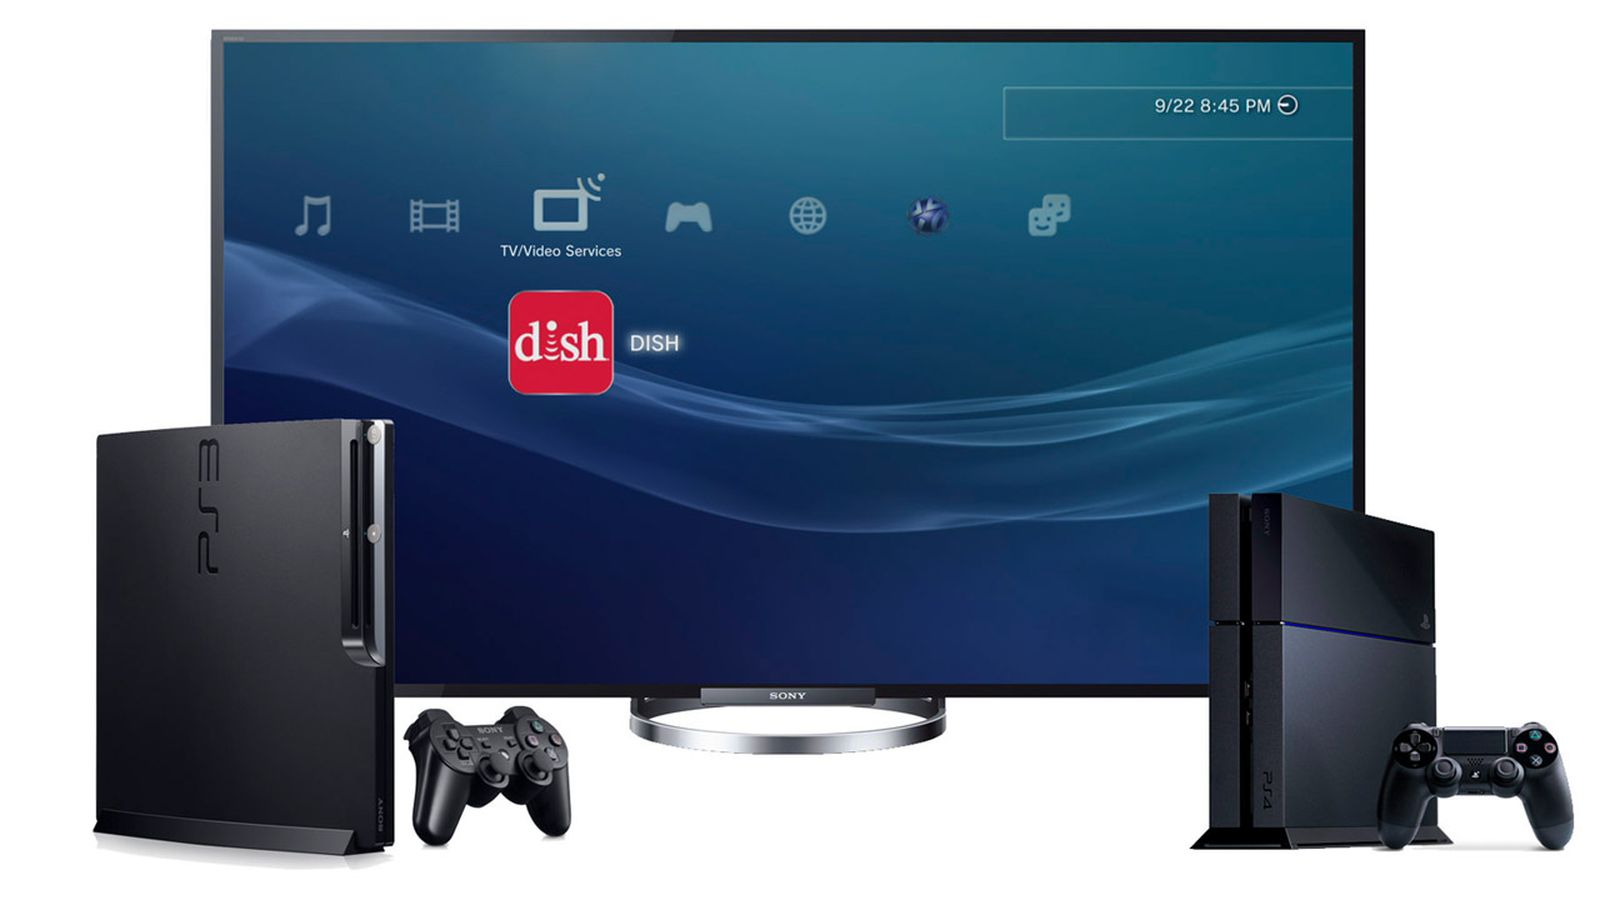 PS3/PS4 Supported File Formats and Stream Local Media to PS3/PS4